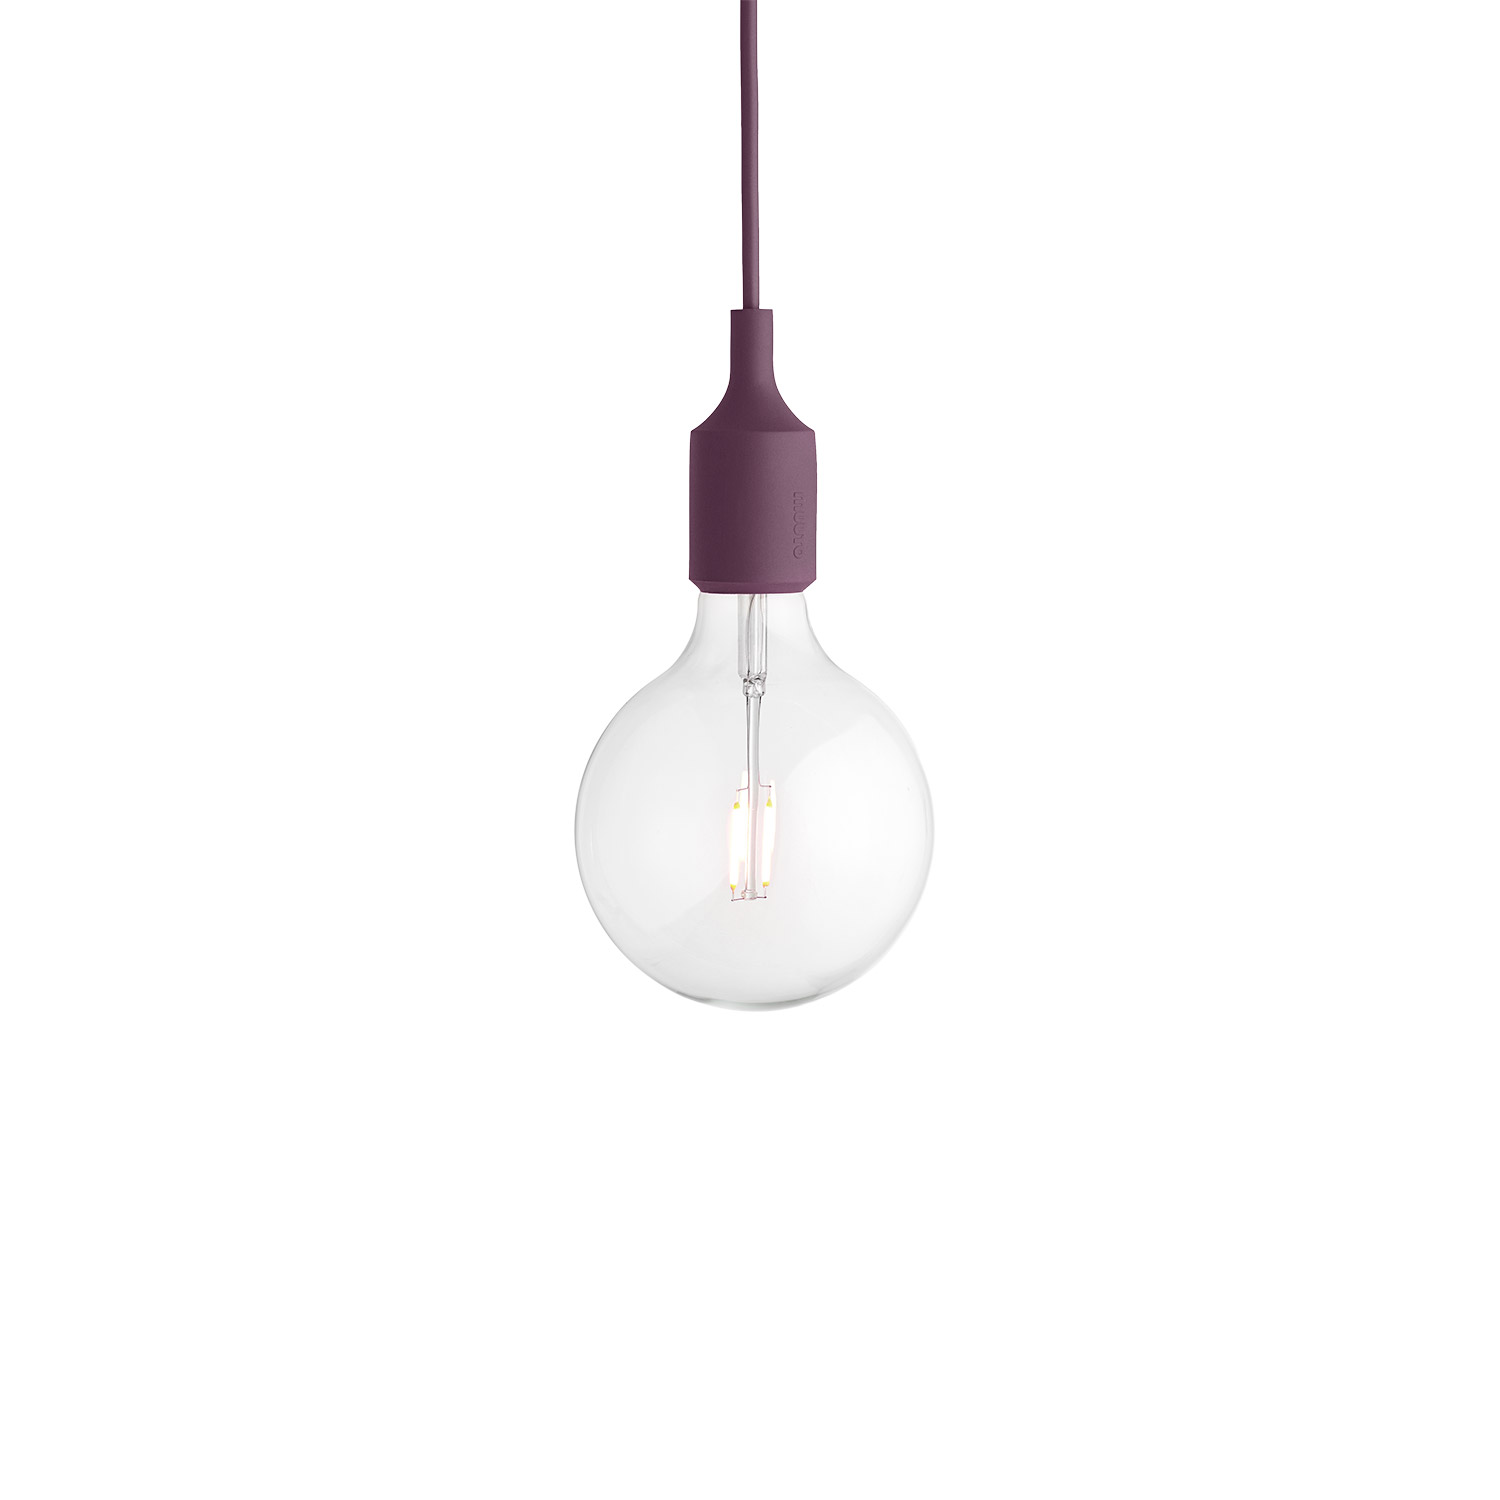 E27 lampa LED, burgundy